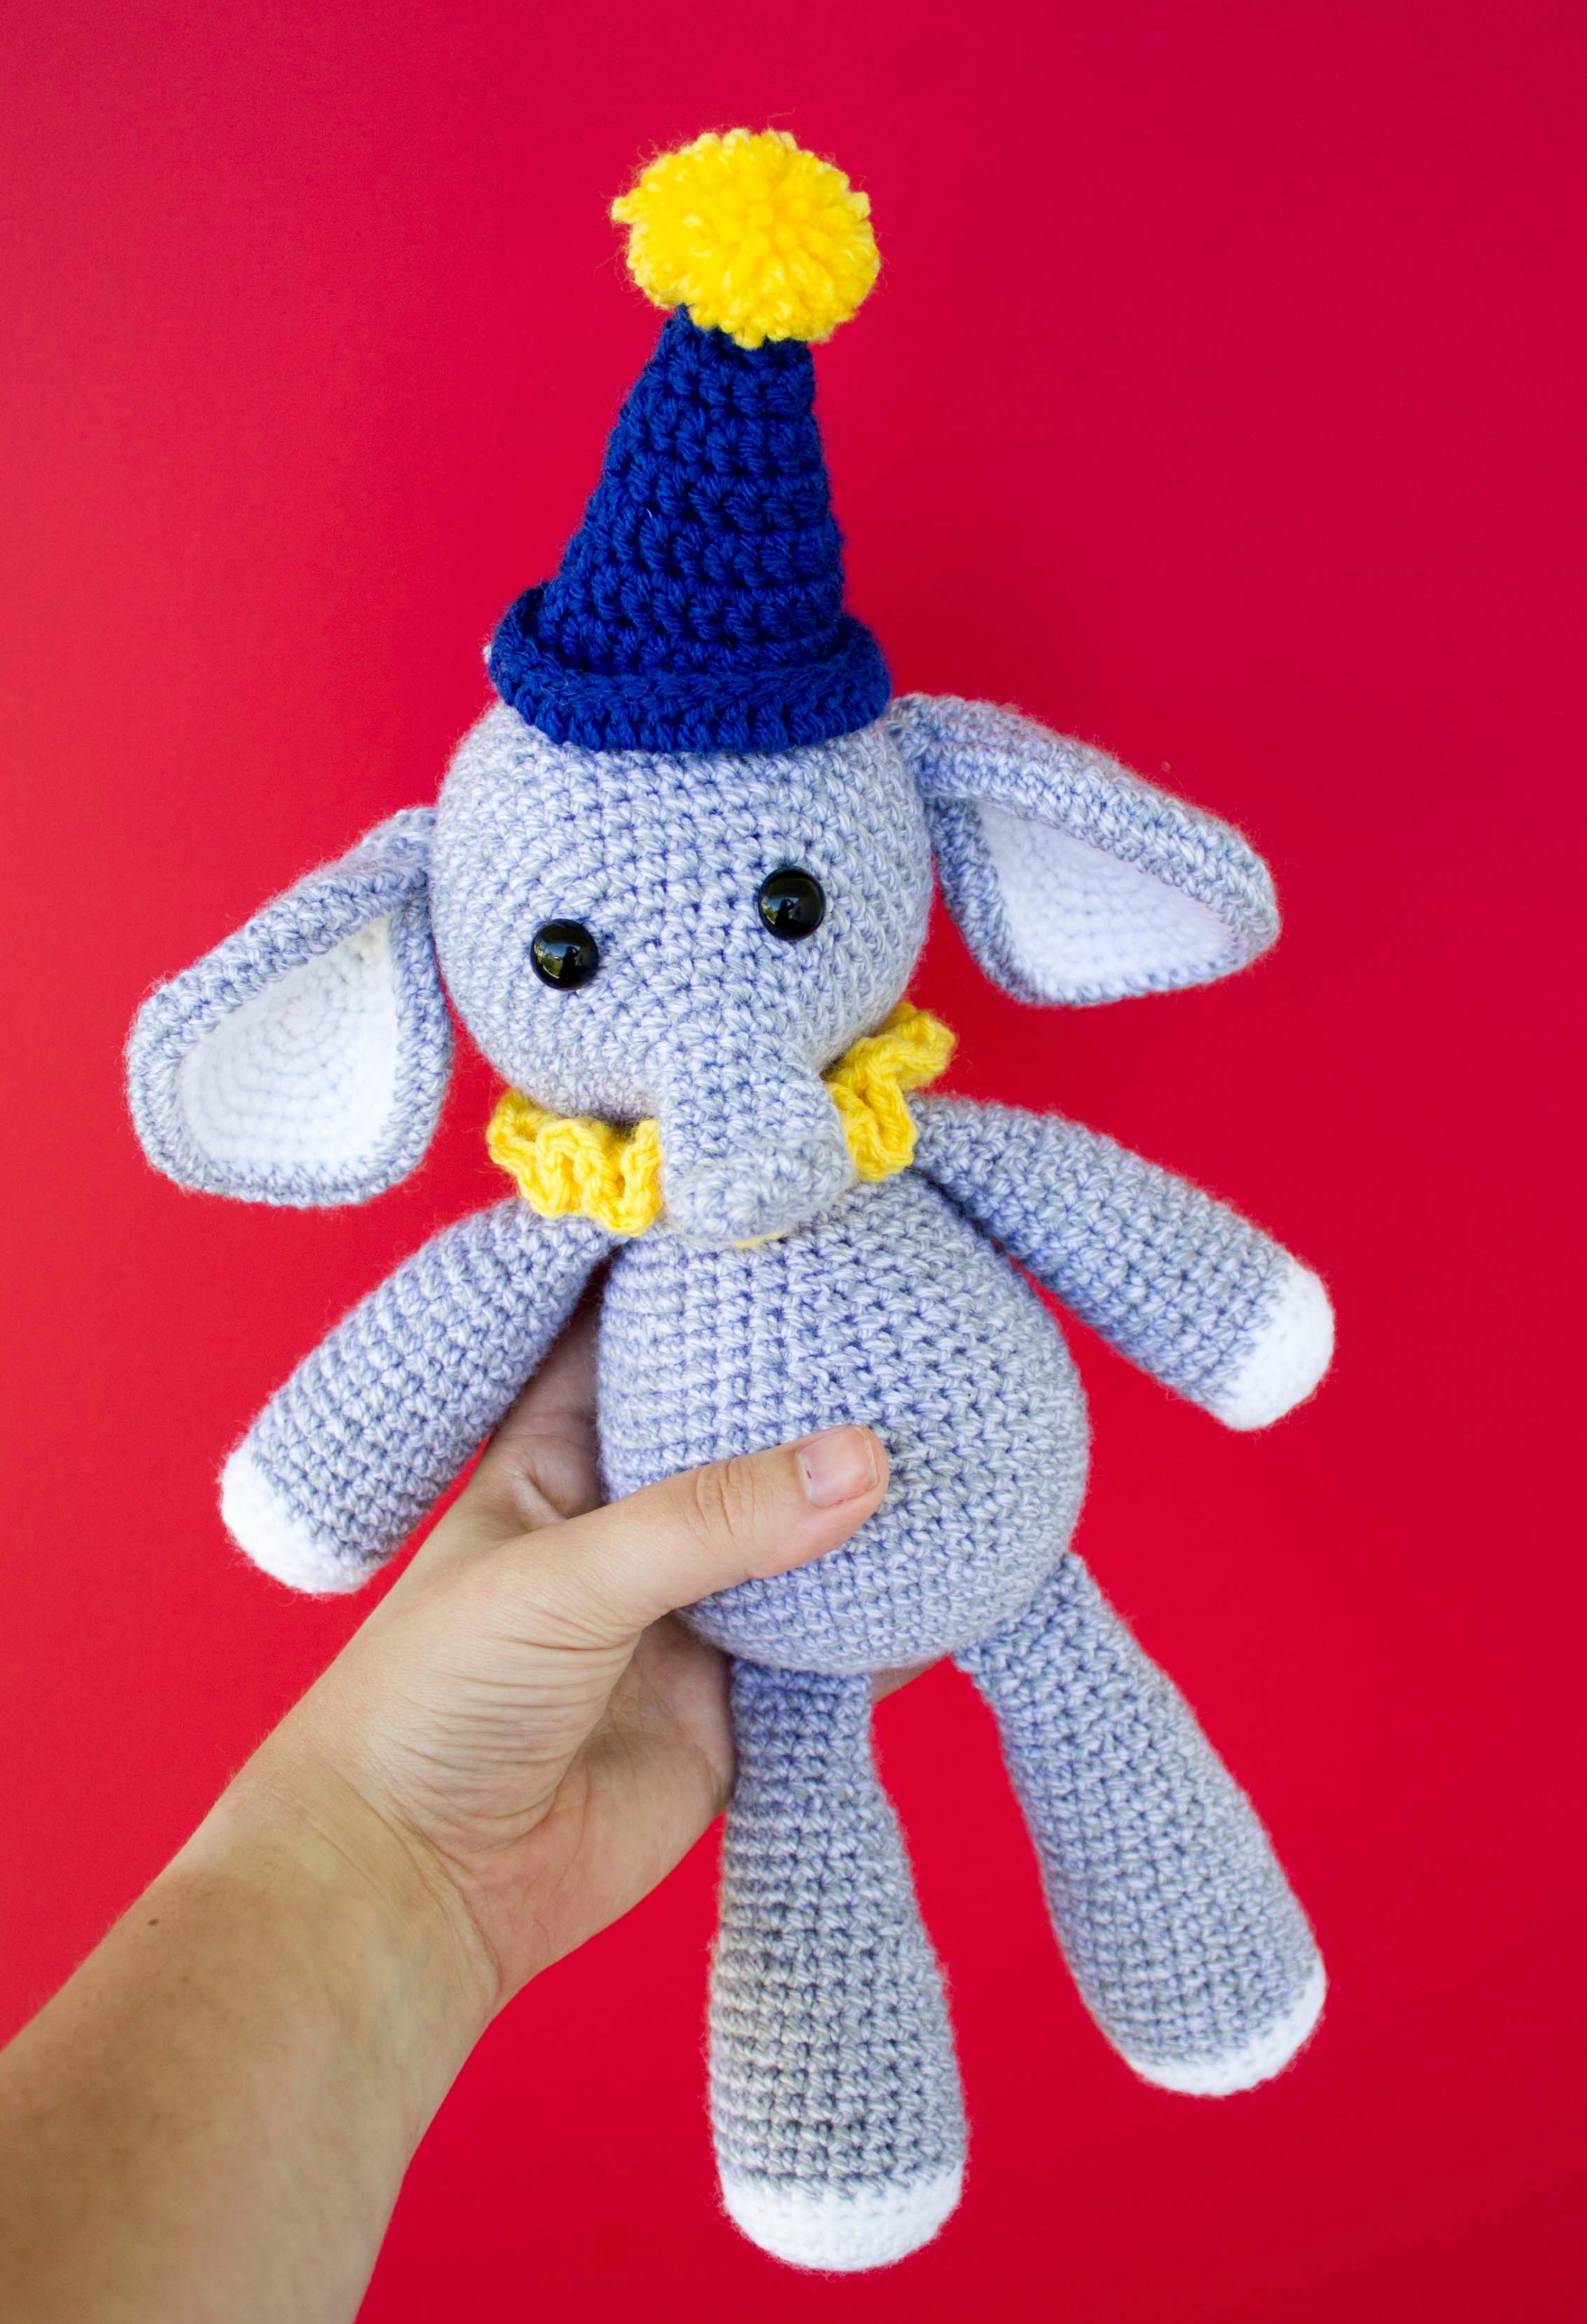 Cuddle Me Elephant crochet pattern - Amigurumi Today | 2576x1759